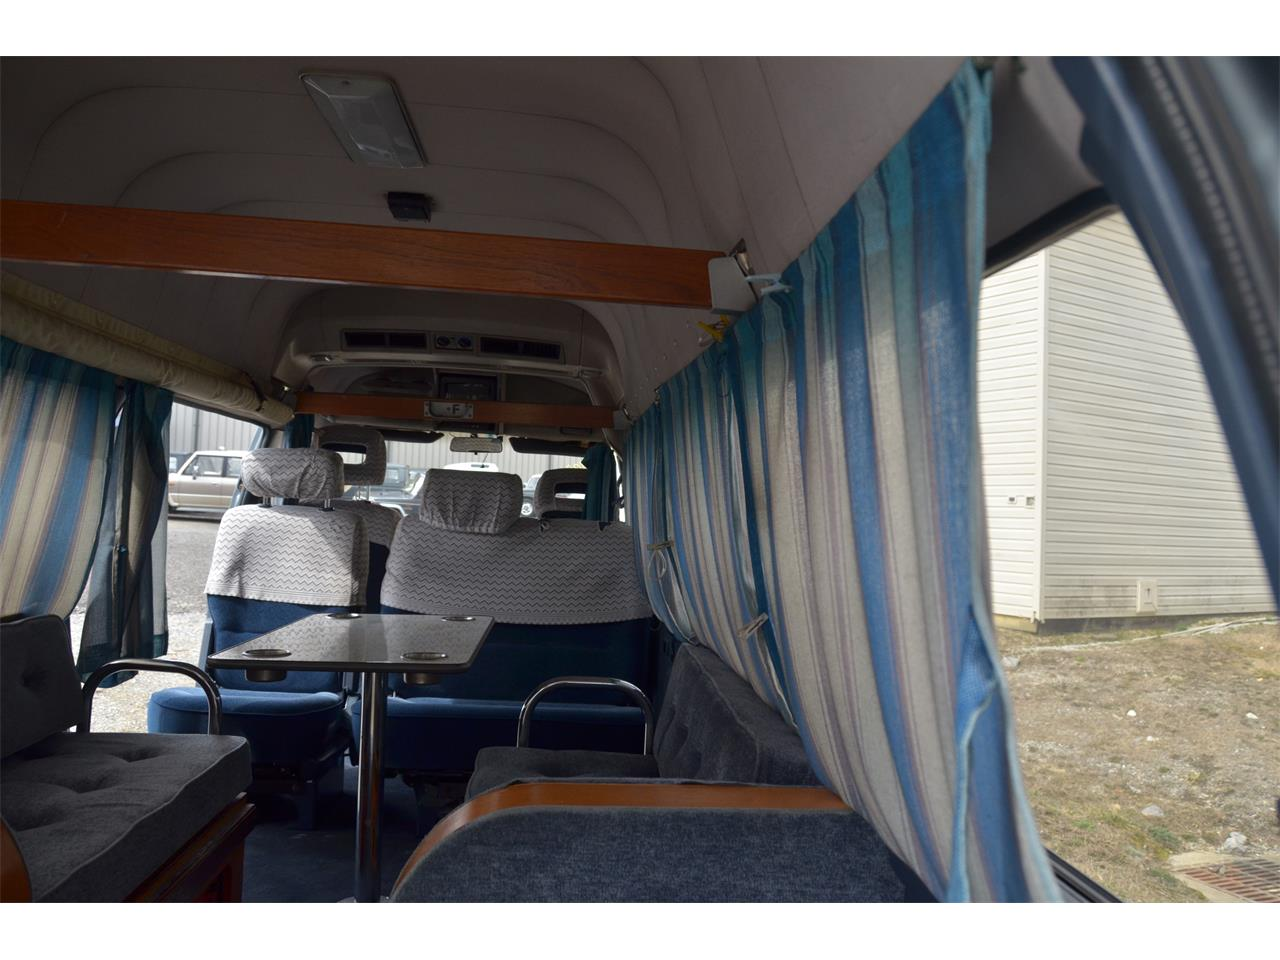 Large Picture of 1990 Caravan located in Virginia - $17,900.00 Offered by Duncan Imports & Classic Cars - LN58